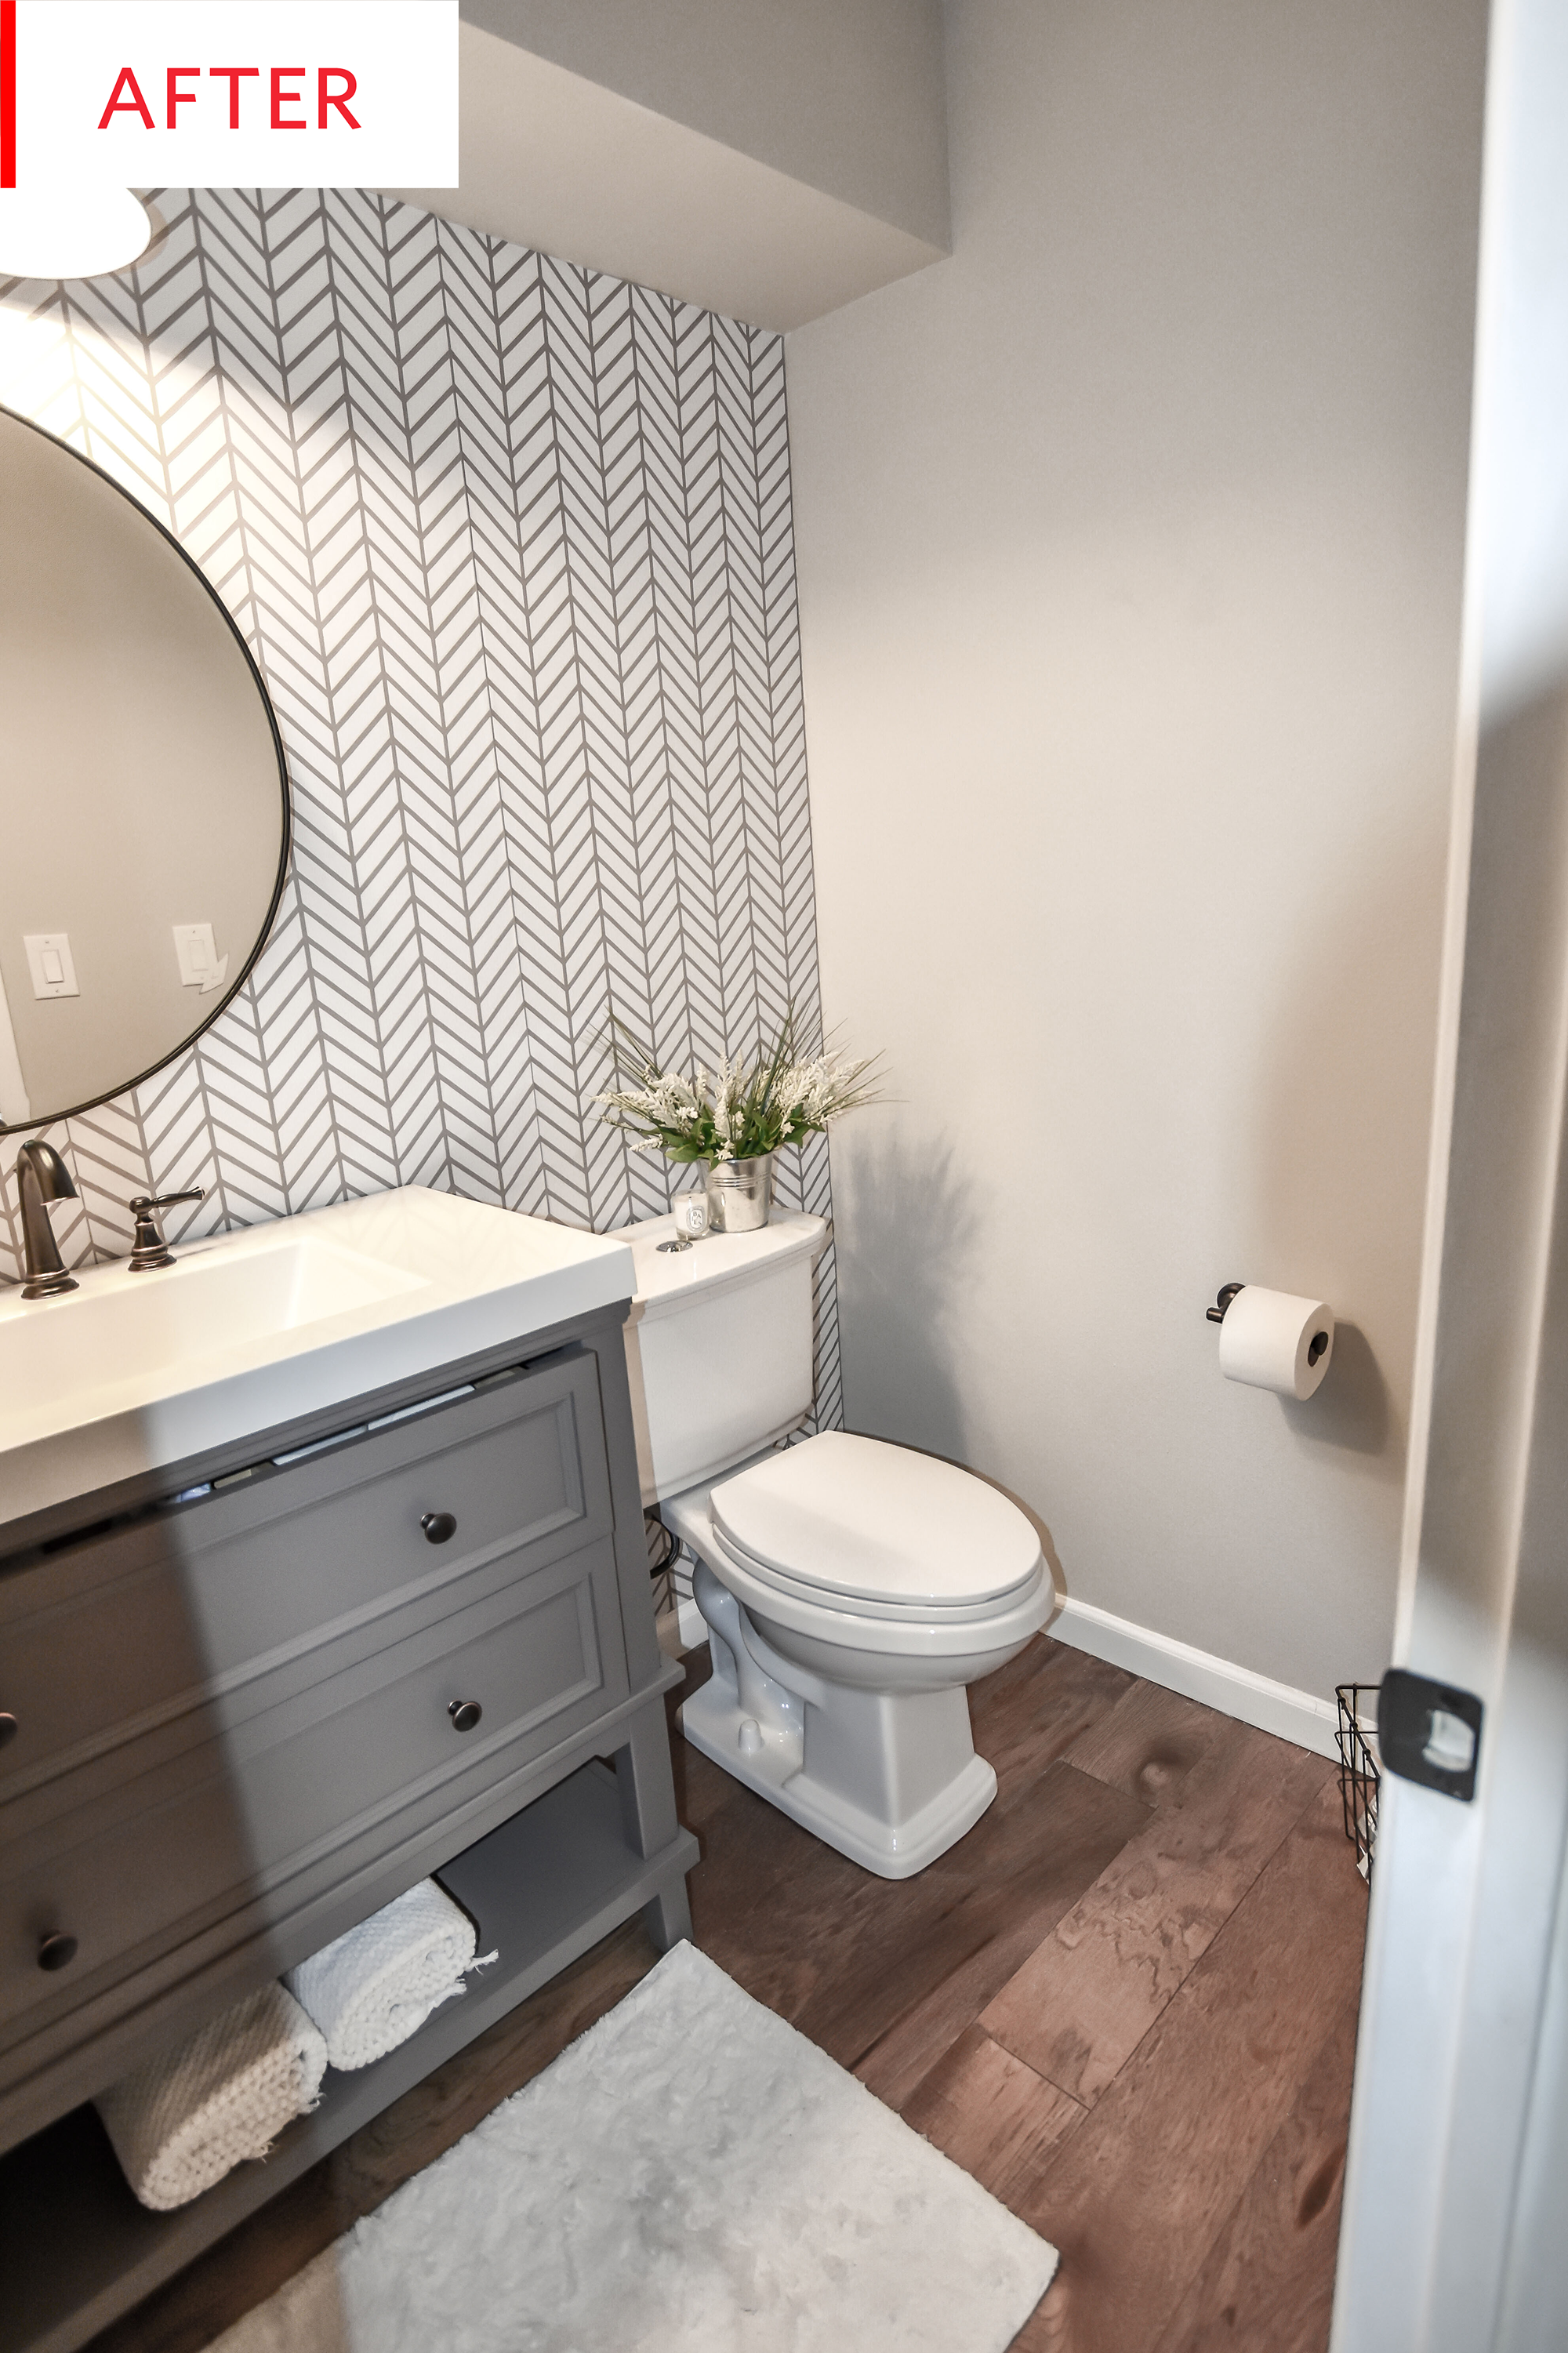 Before And After: An Amazing New Bathroom For Only $1,000 | Mountain